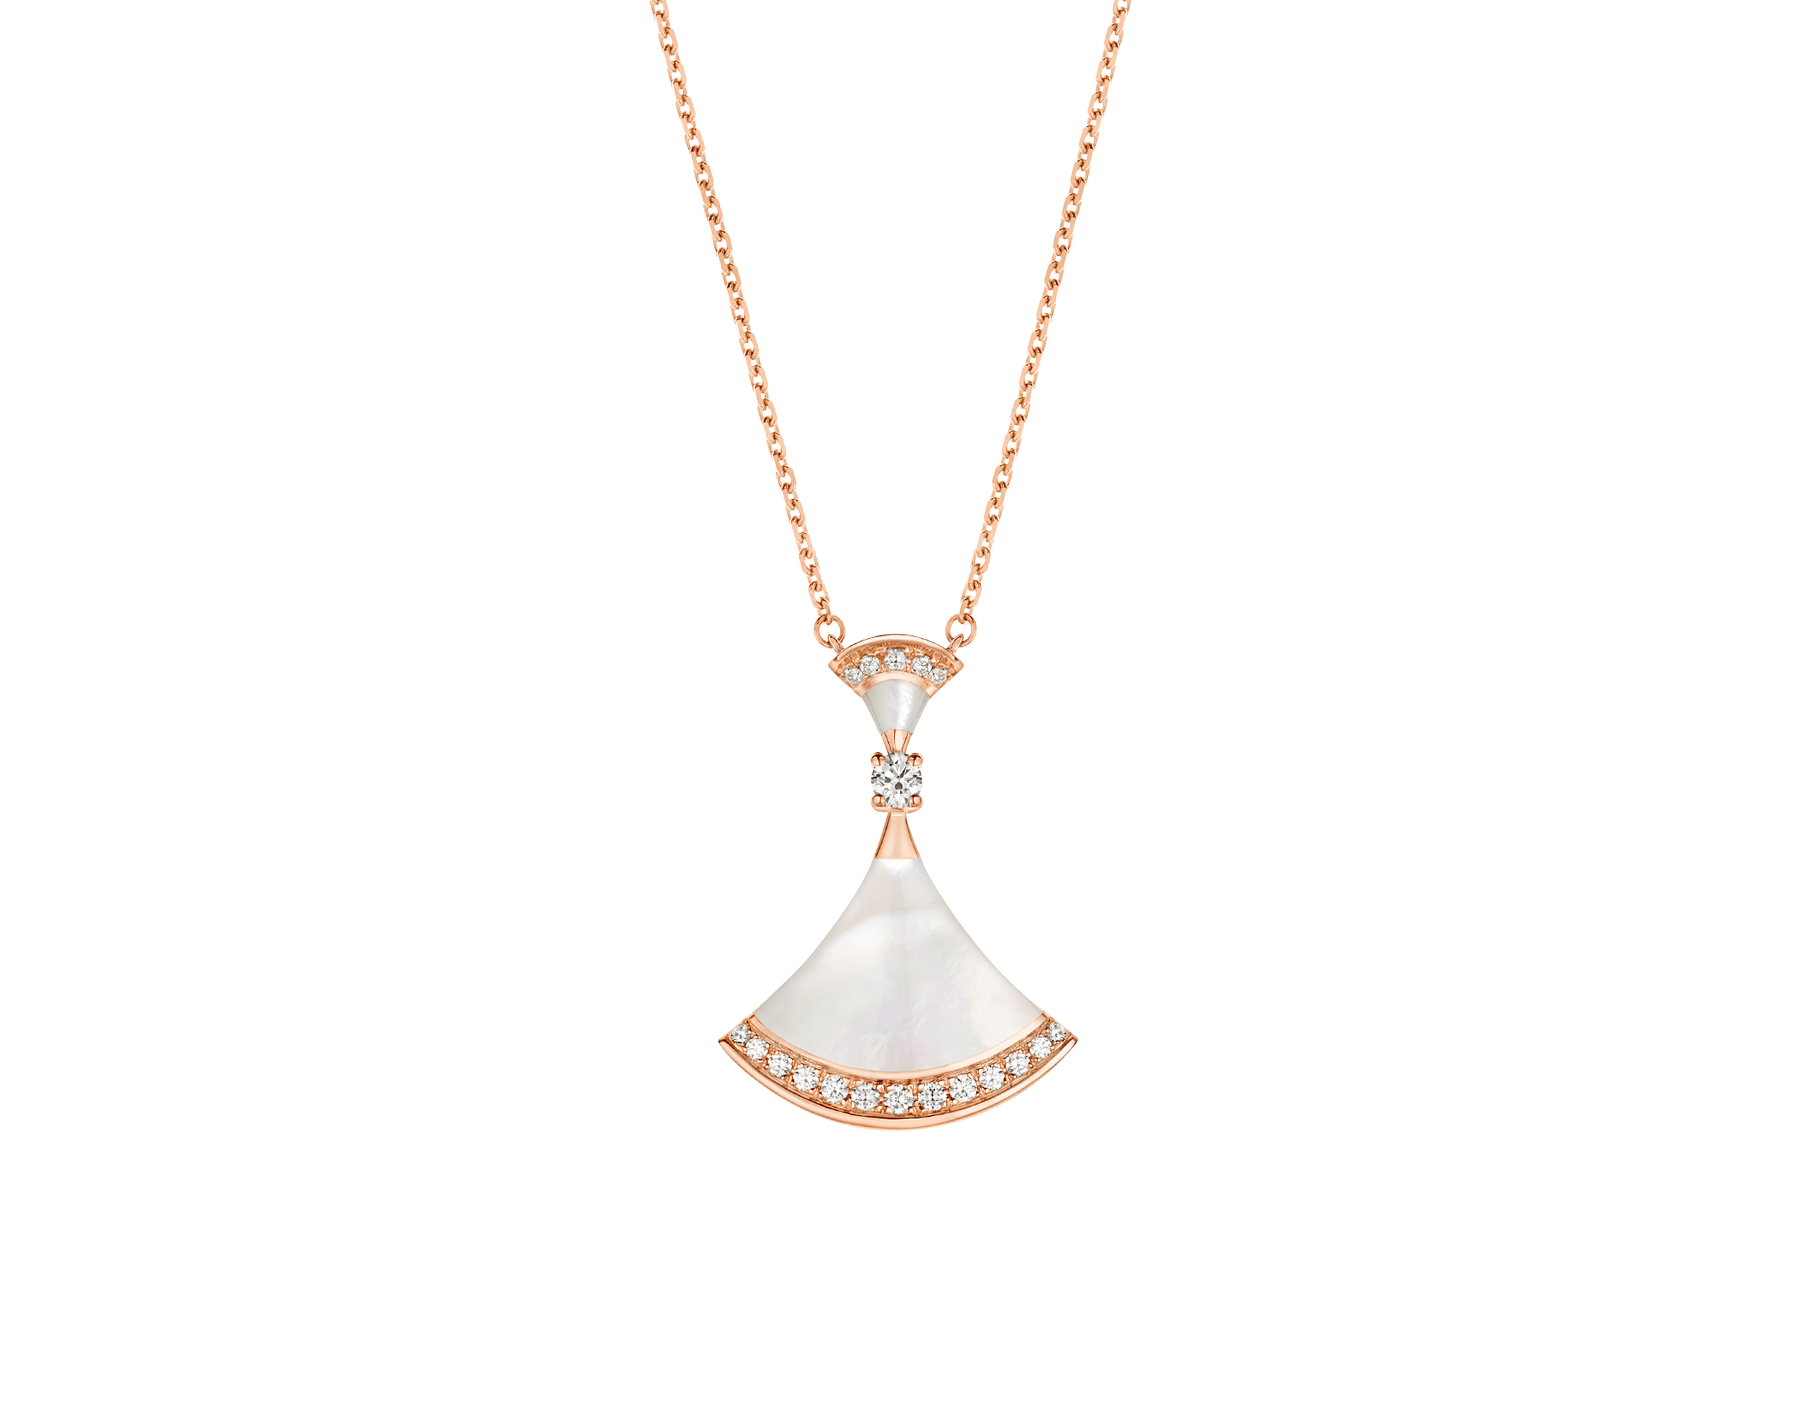 DIVAS' DREAM 18 kt rose gold necklace set with mother of pearl elements, a round brilliant-cut diamond and pavé diamonds. 356452 image 1